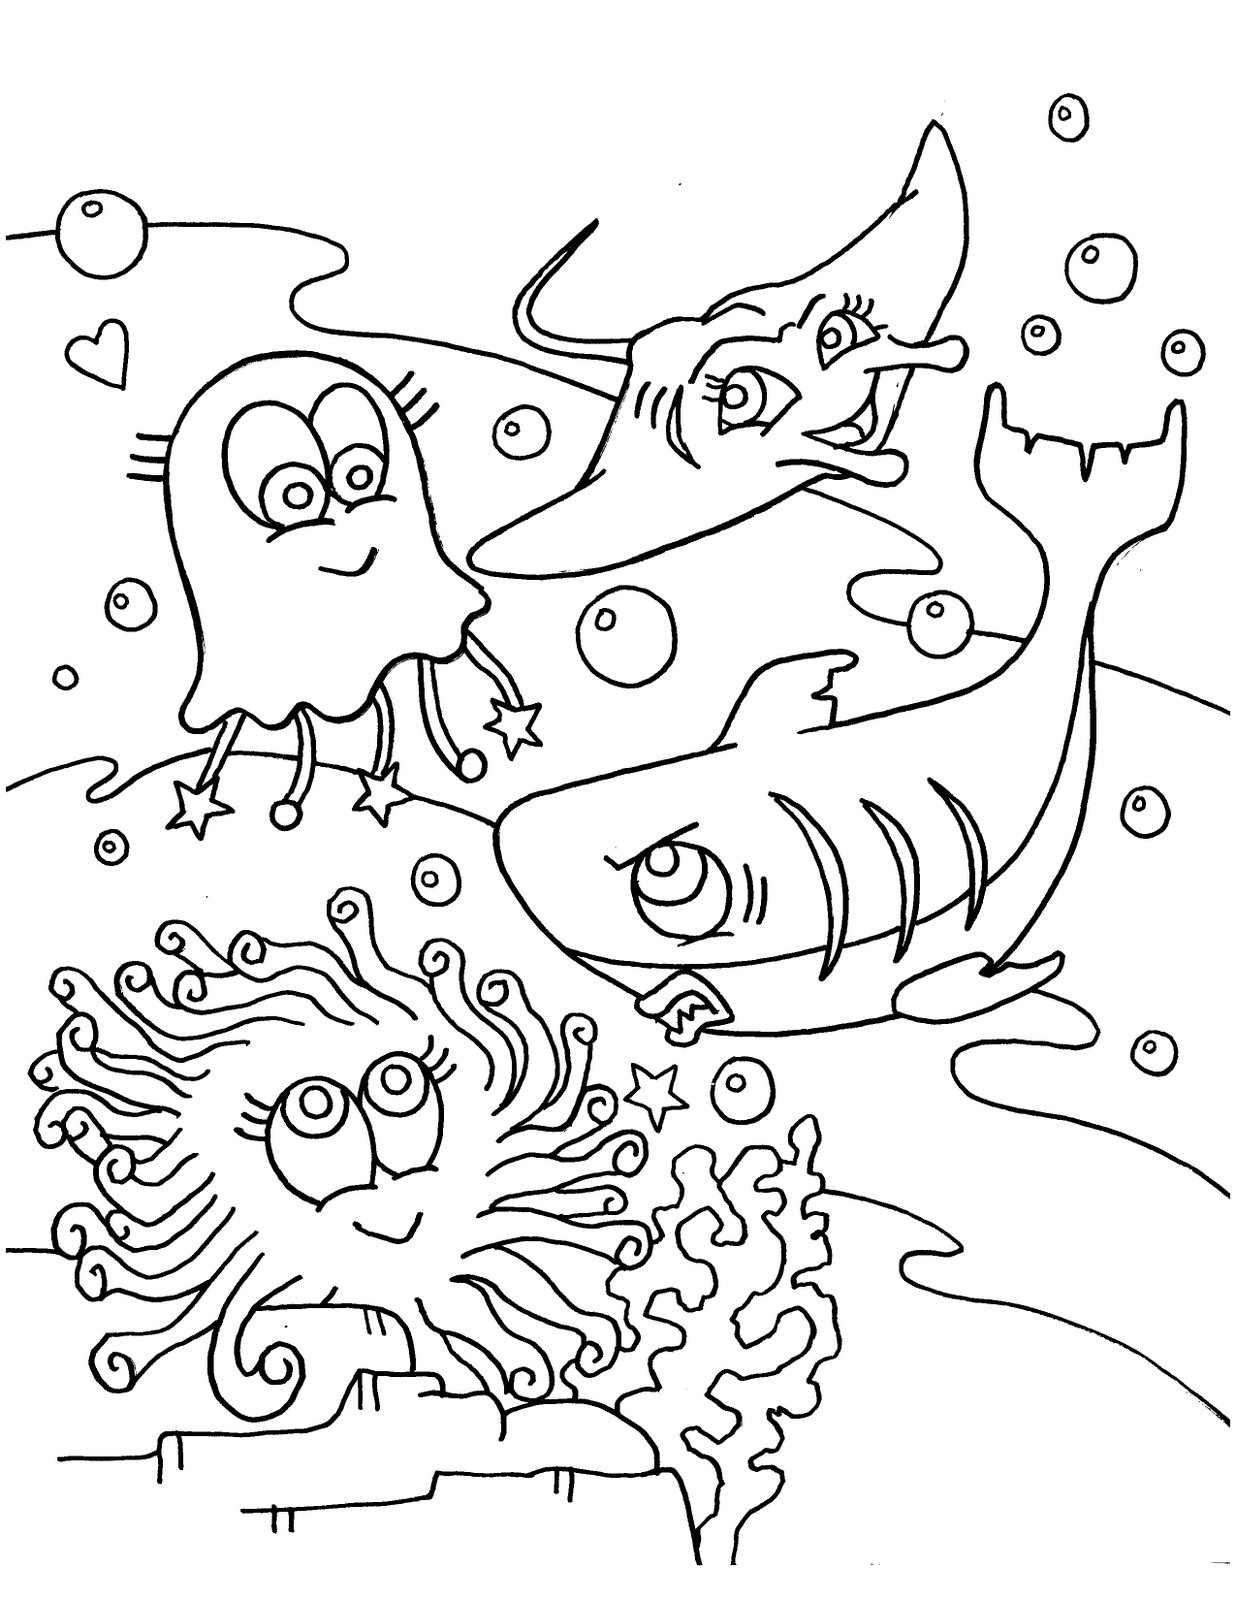 coloring pages of the ocean - photo#6